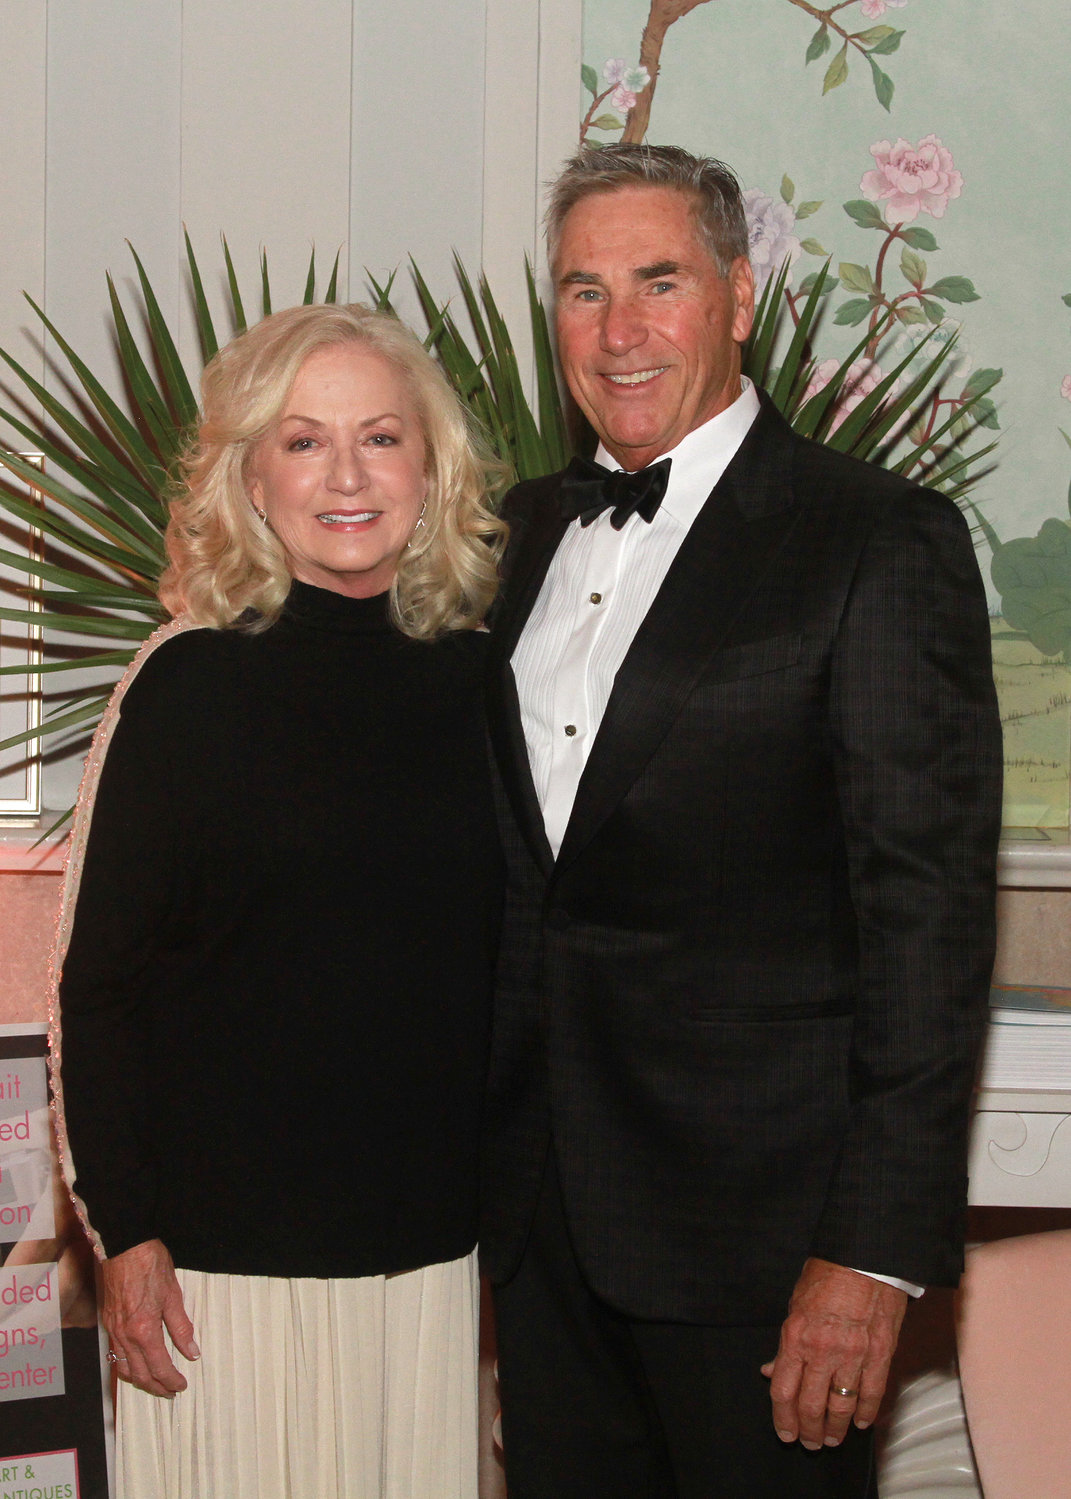 Jim and Angeline Treace attend the 42nd annual Art & Antiques Show gala Nov. 30.